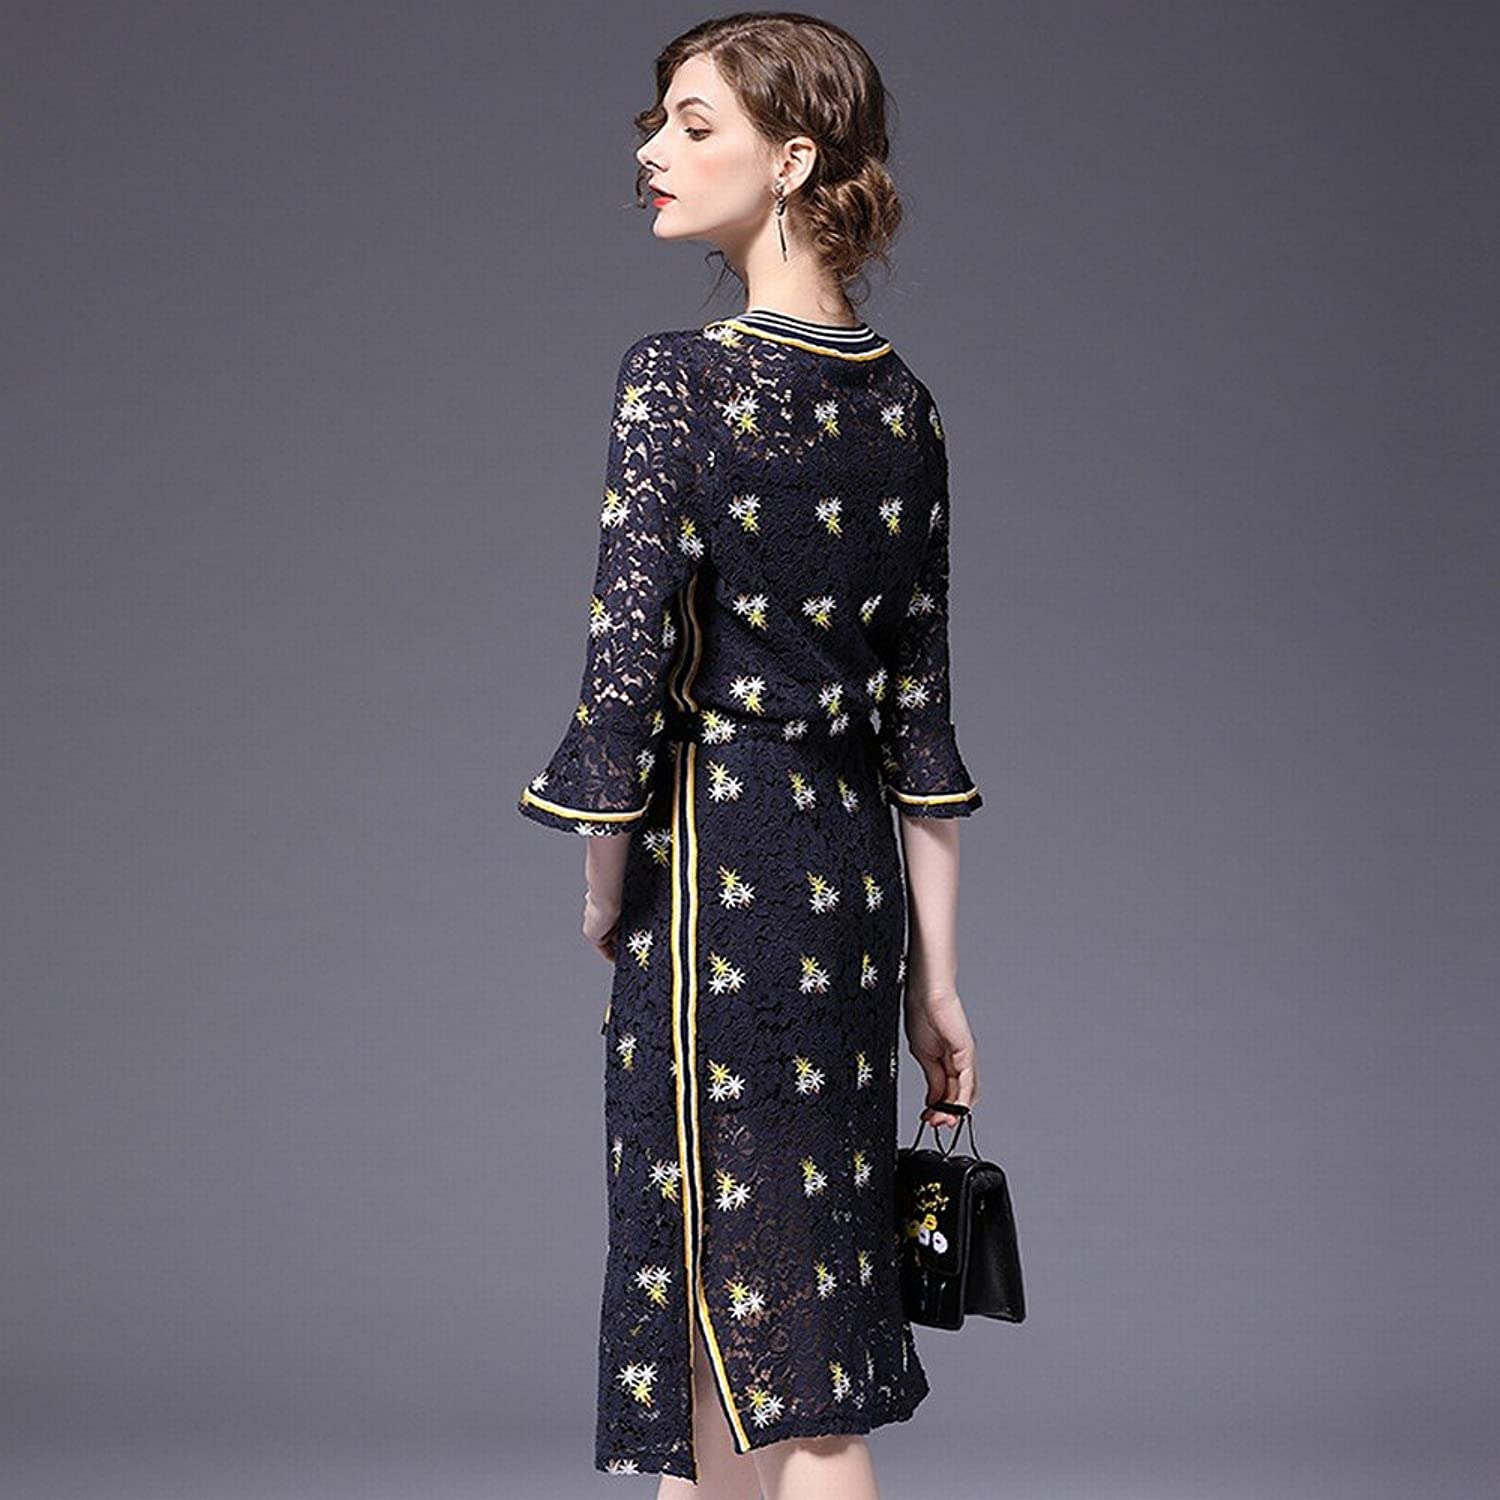 DEED Spring and Summer Large Size Women 'S Long Section of Heavy Embroidery Speaker Lace Dress